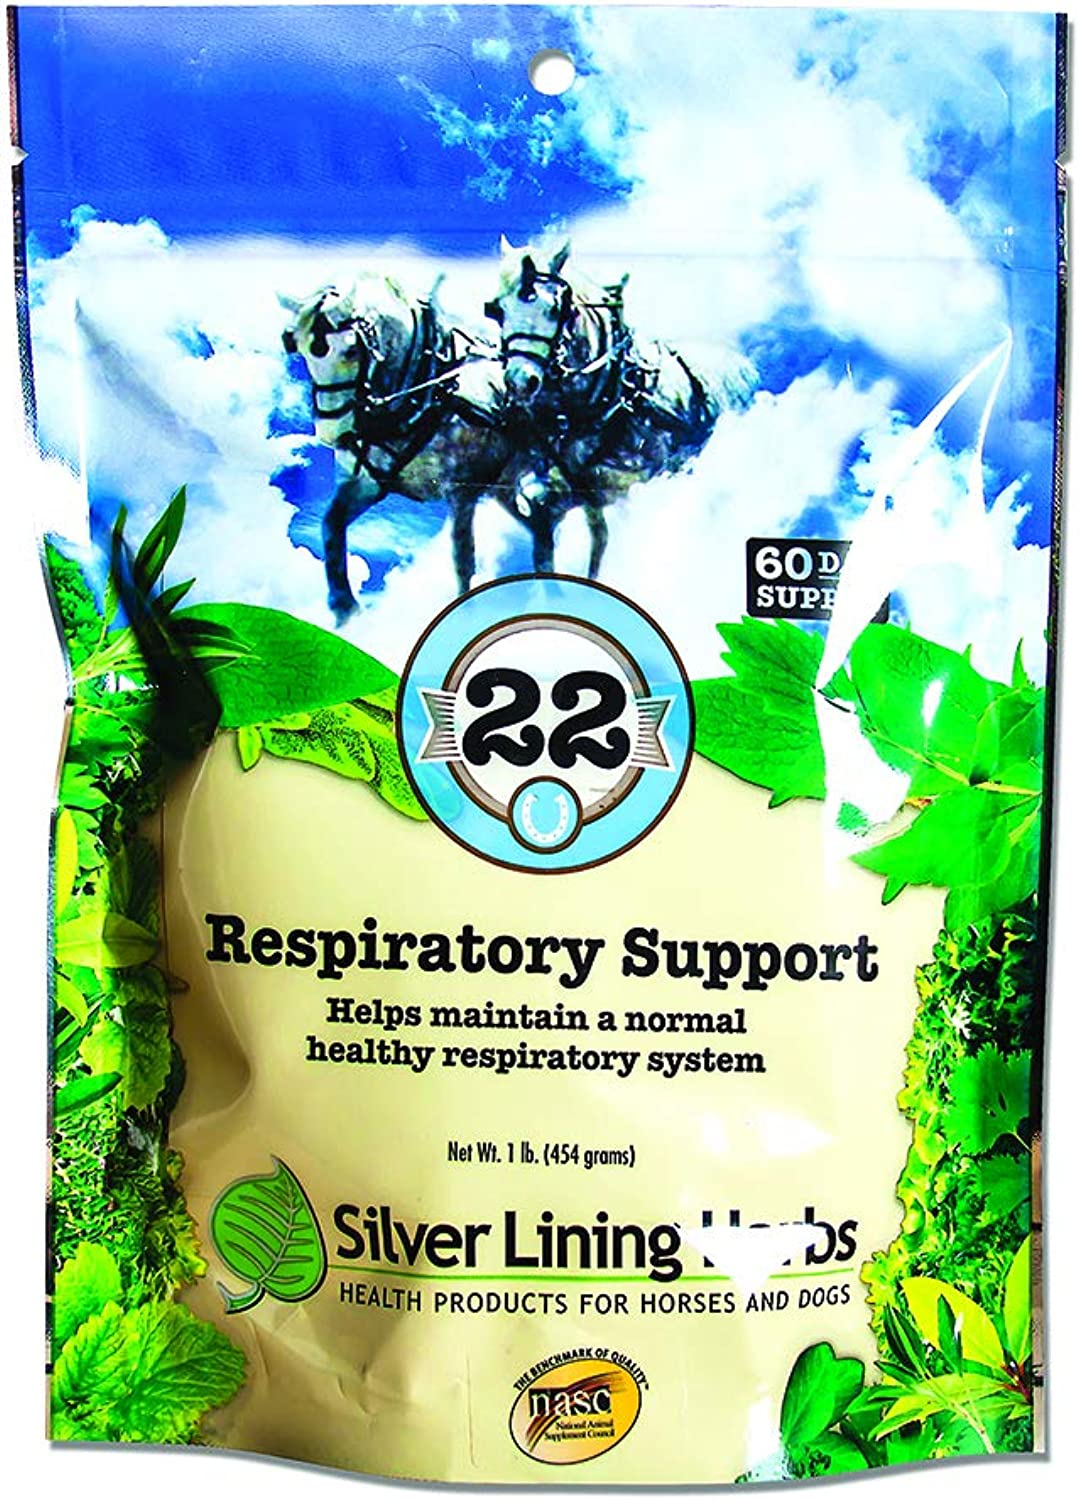 Respiratory Support  for Horses   Supports Normal Function Of The Lungs   Assists Horses Body In Combating Environmental Pollutants  Helps Keep Airways Clear  Made In The USA by Silver Lining Herbs  From Natural Herbs